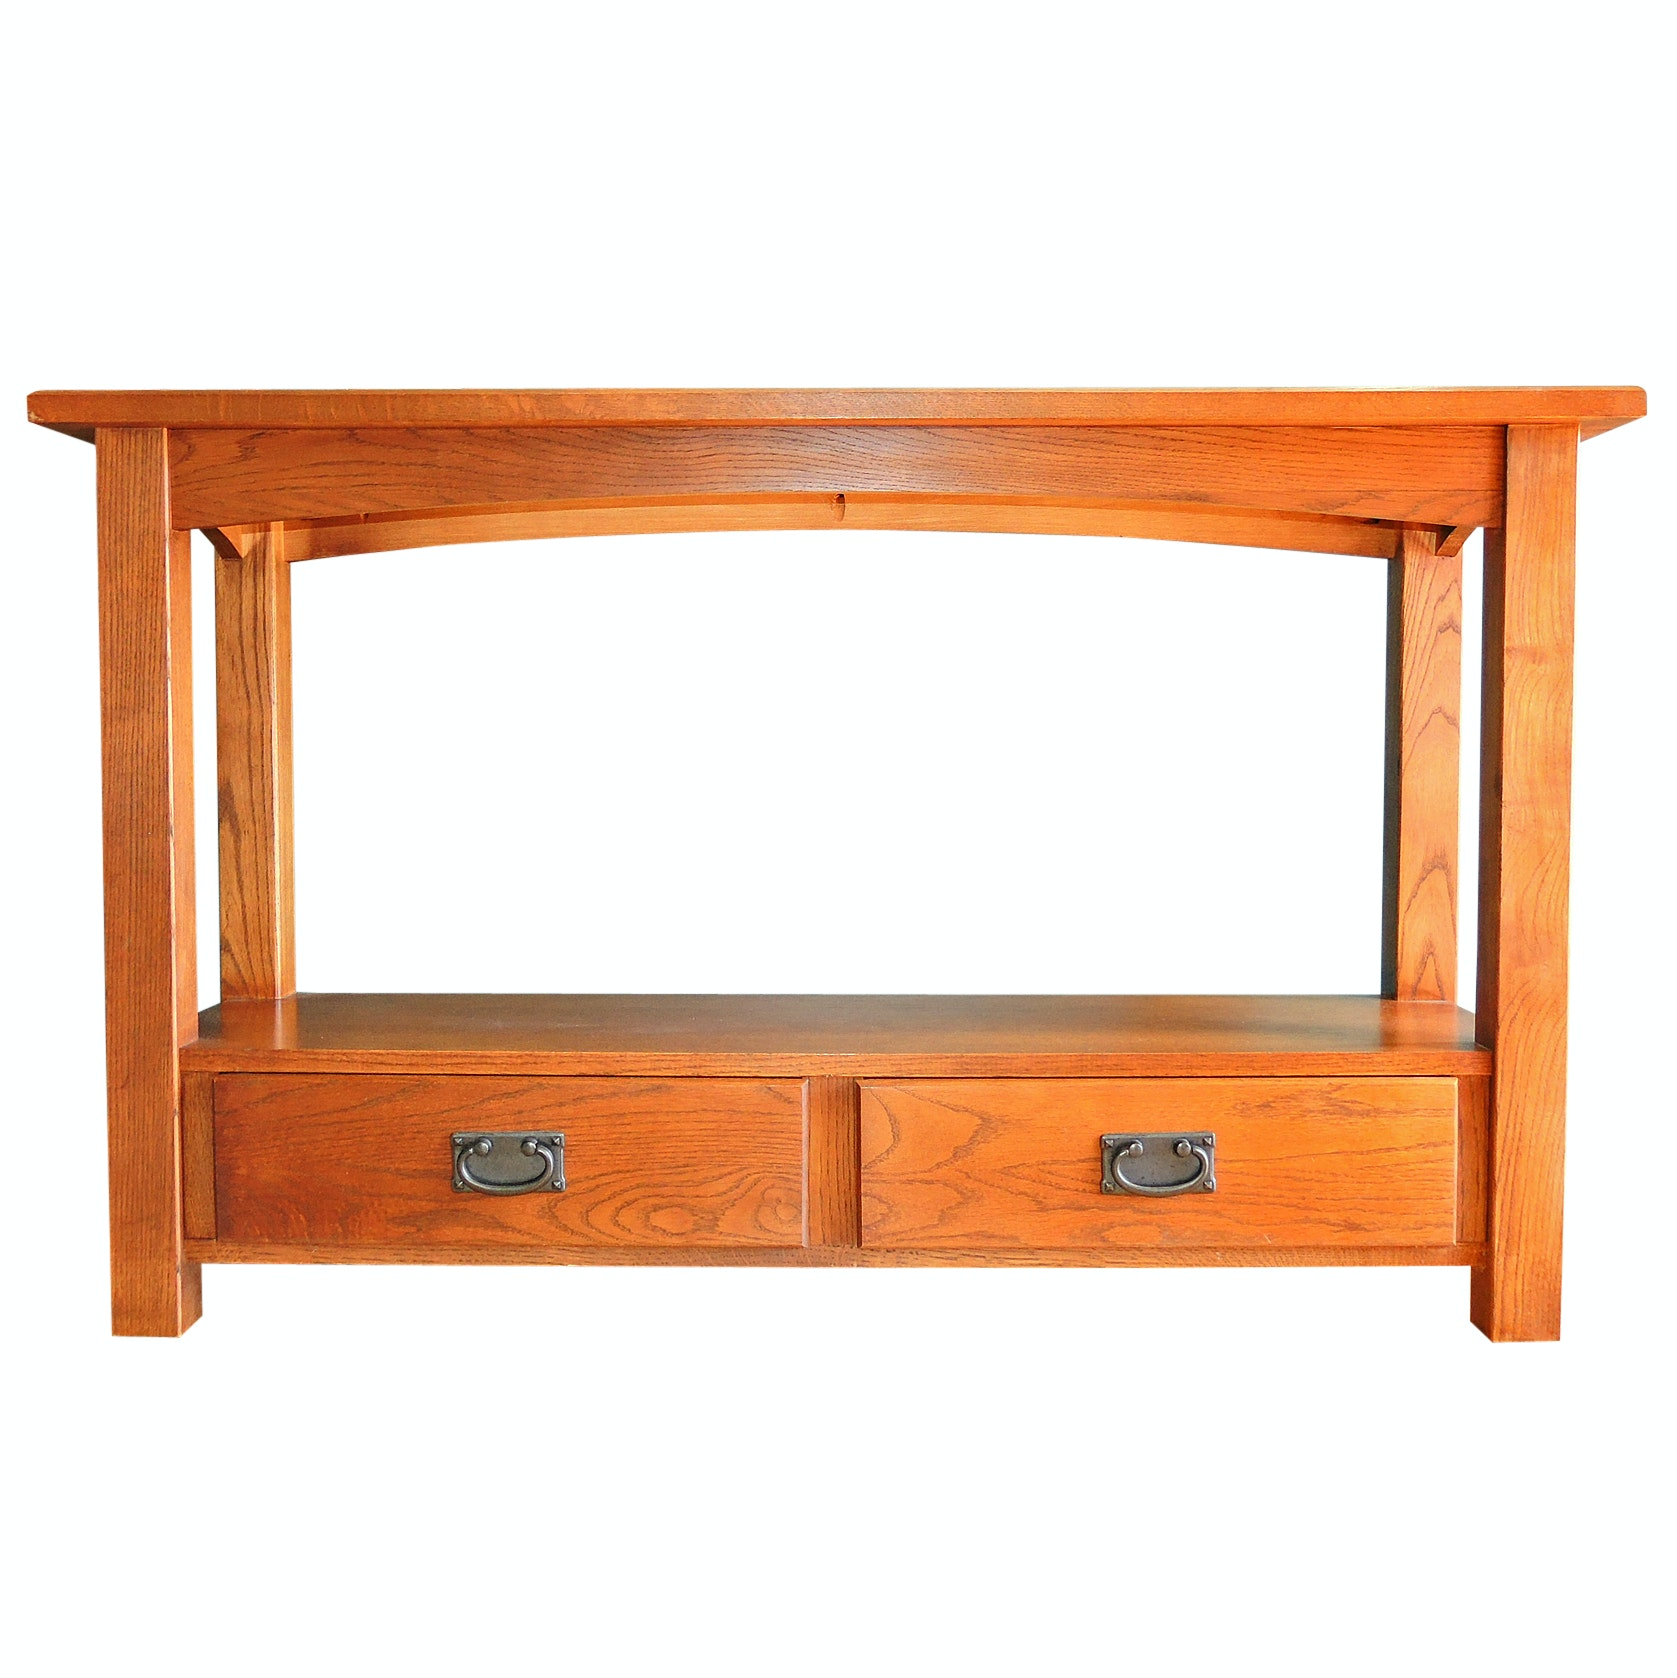 Mission Style Console Table by Peter-Revington Furniture